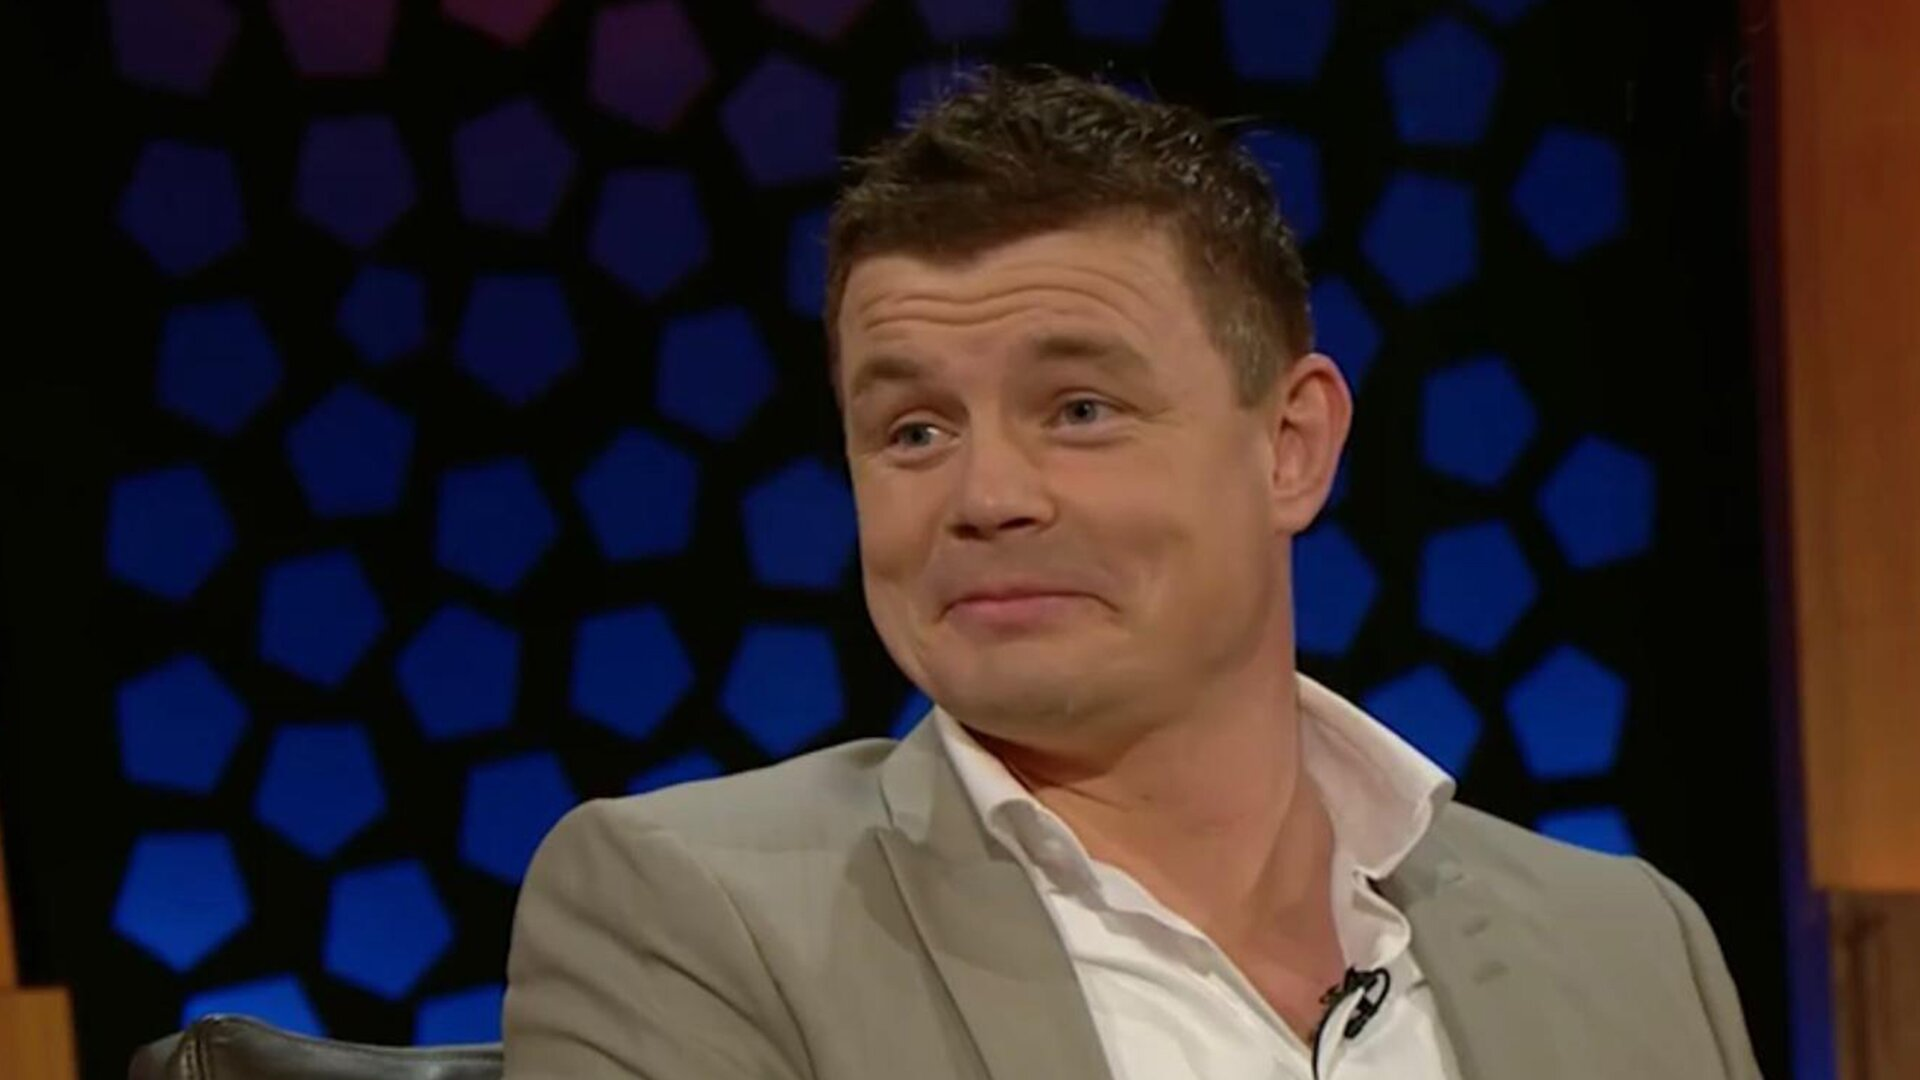 Brian O'Driscoll lands himself in hot water for lockdown joke just hours after new Irish pandemic measures announcement